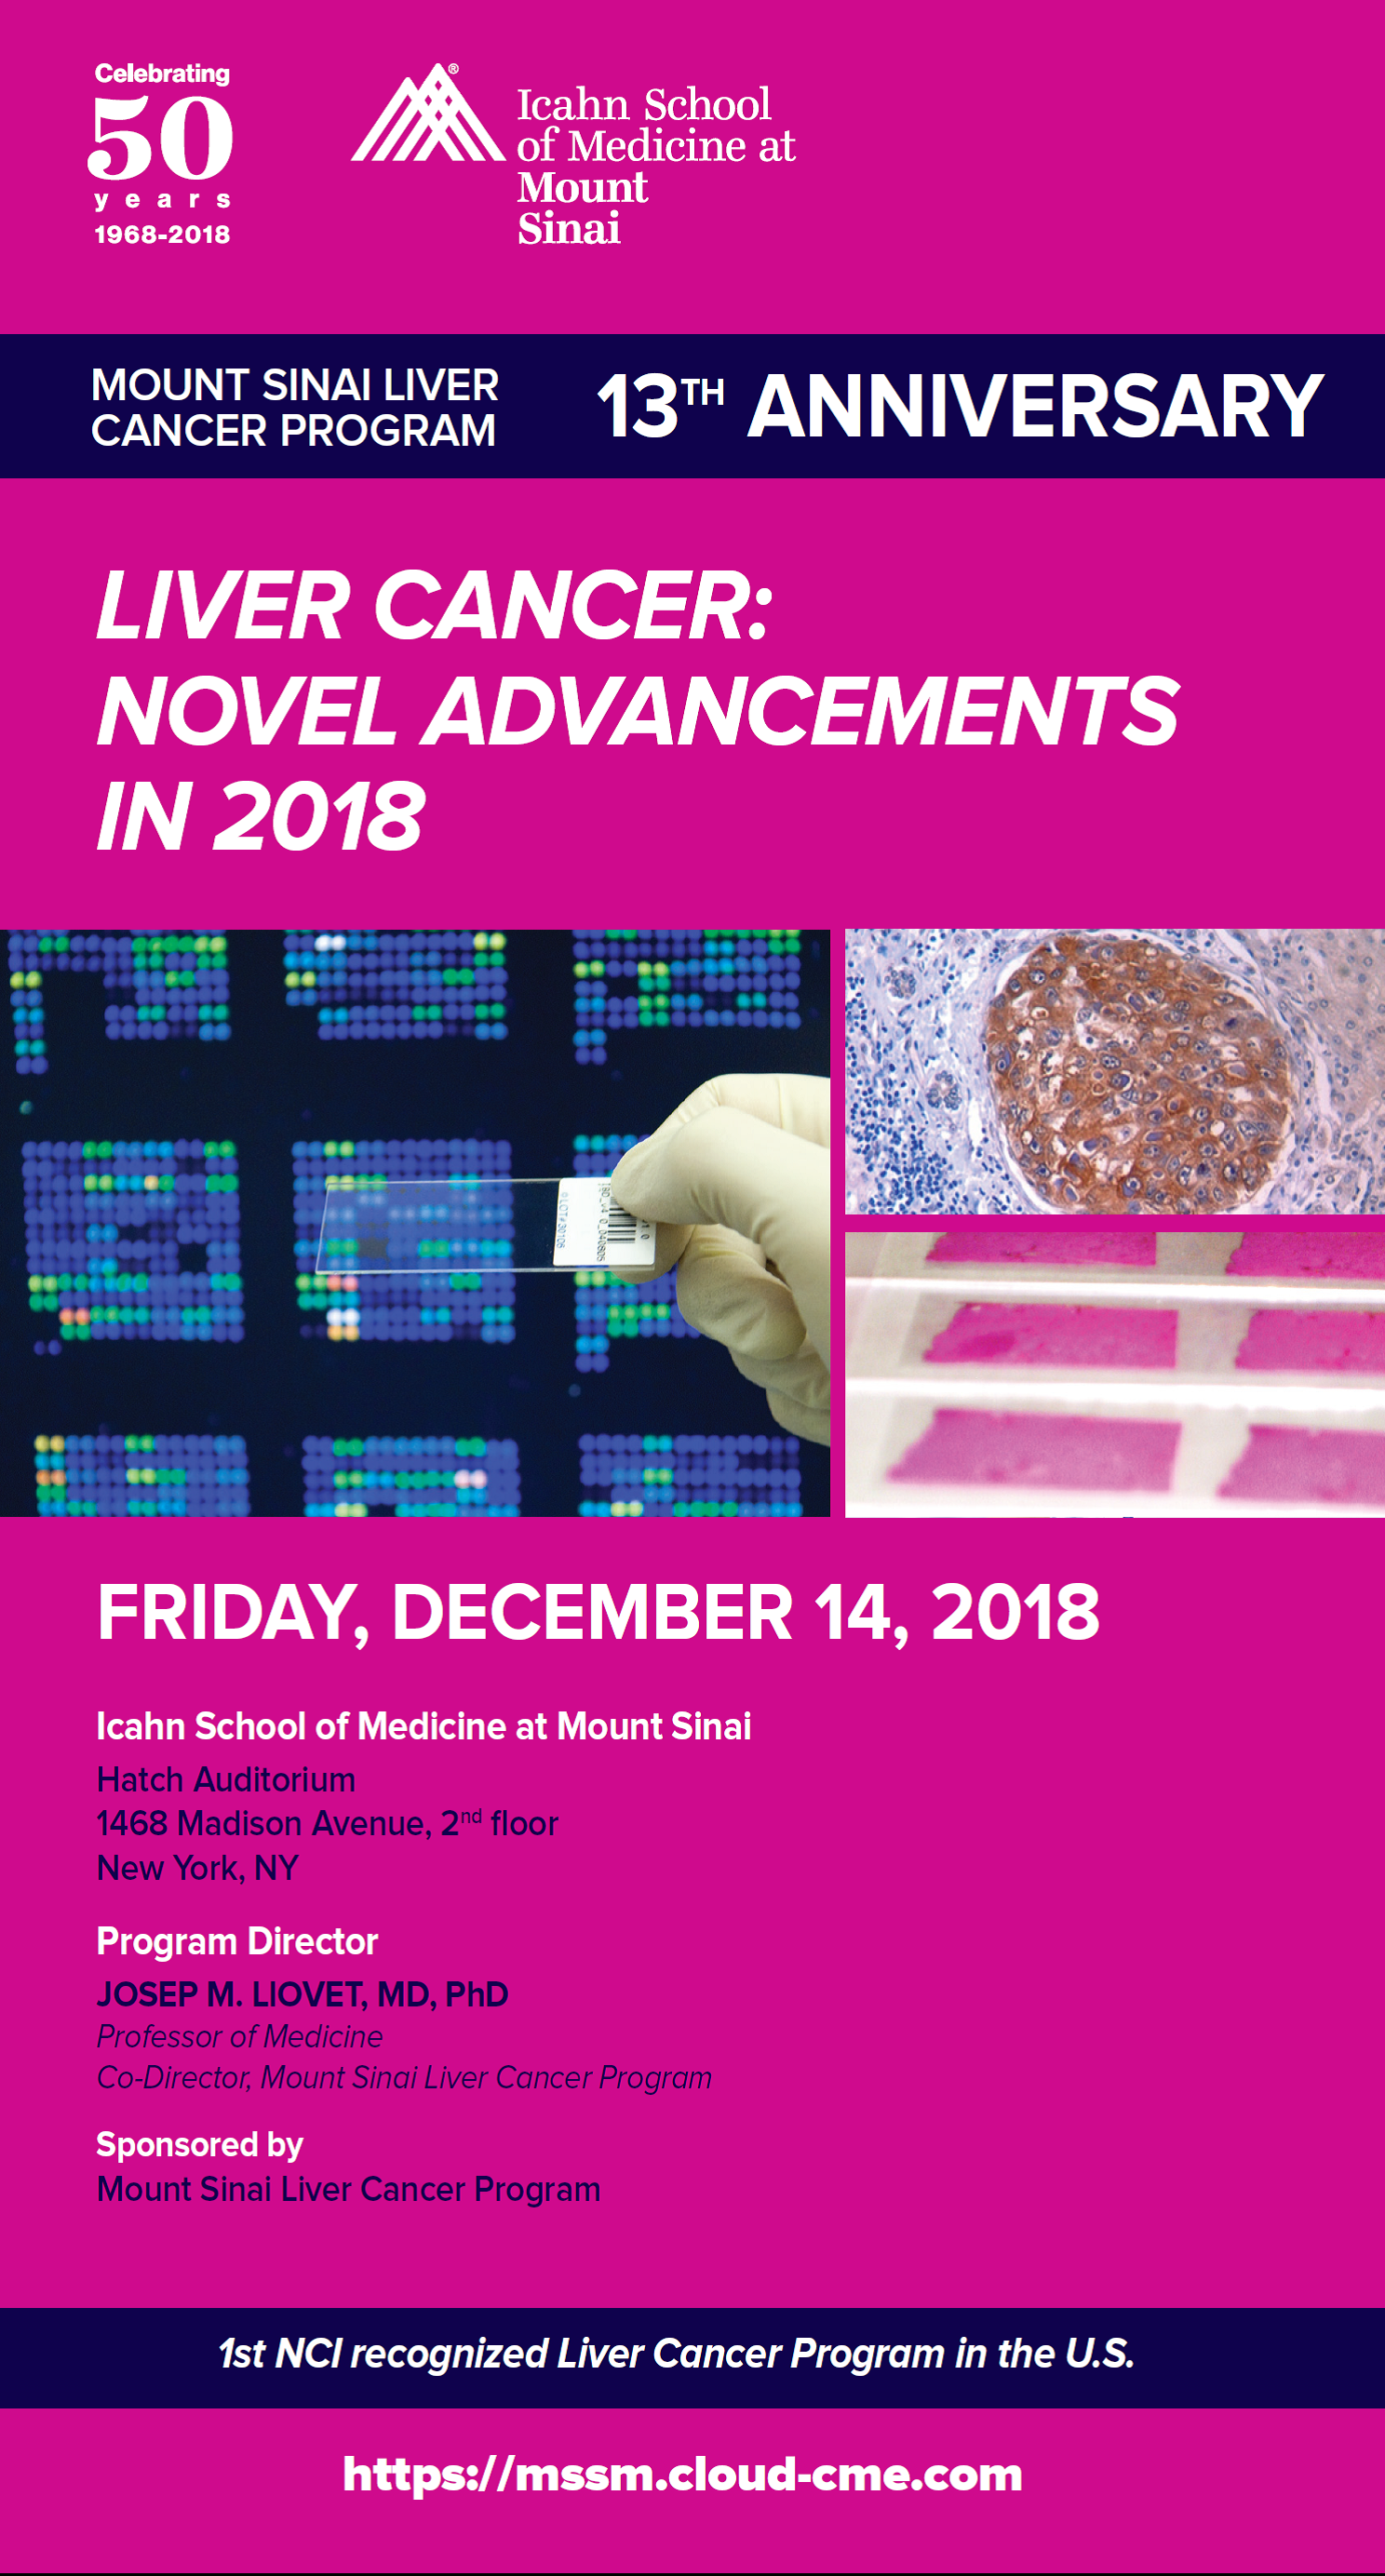 Mount Sinai Liver Cancer Program, 13th Anniversary. LIVER CANCER: NOVEL ADVANCEMENTS IN 2018 Banner